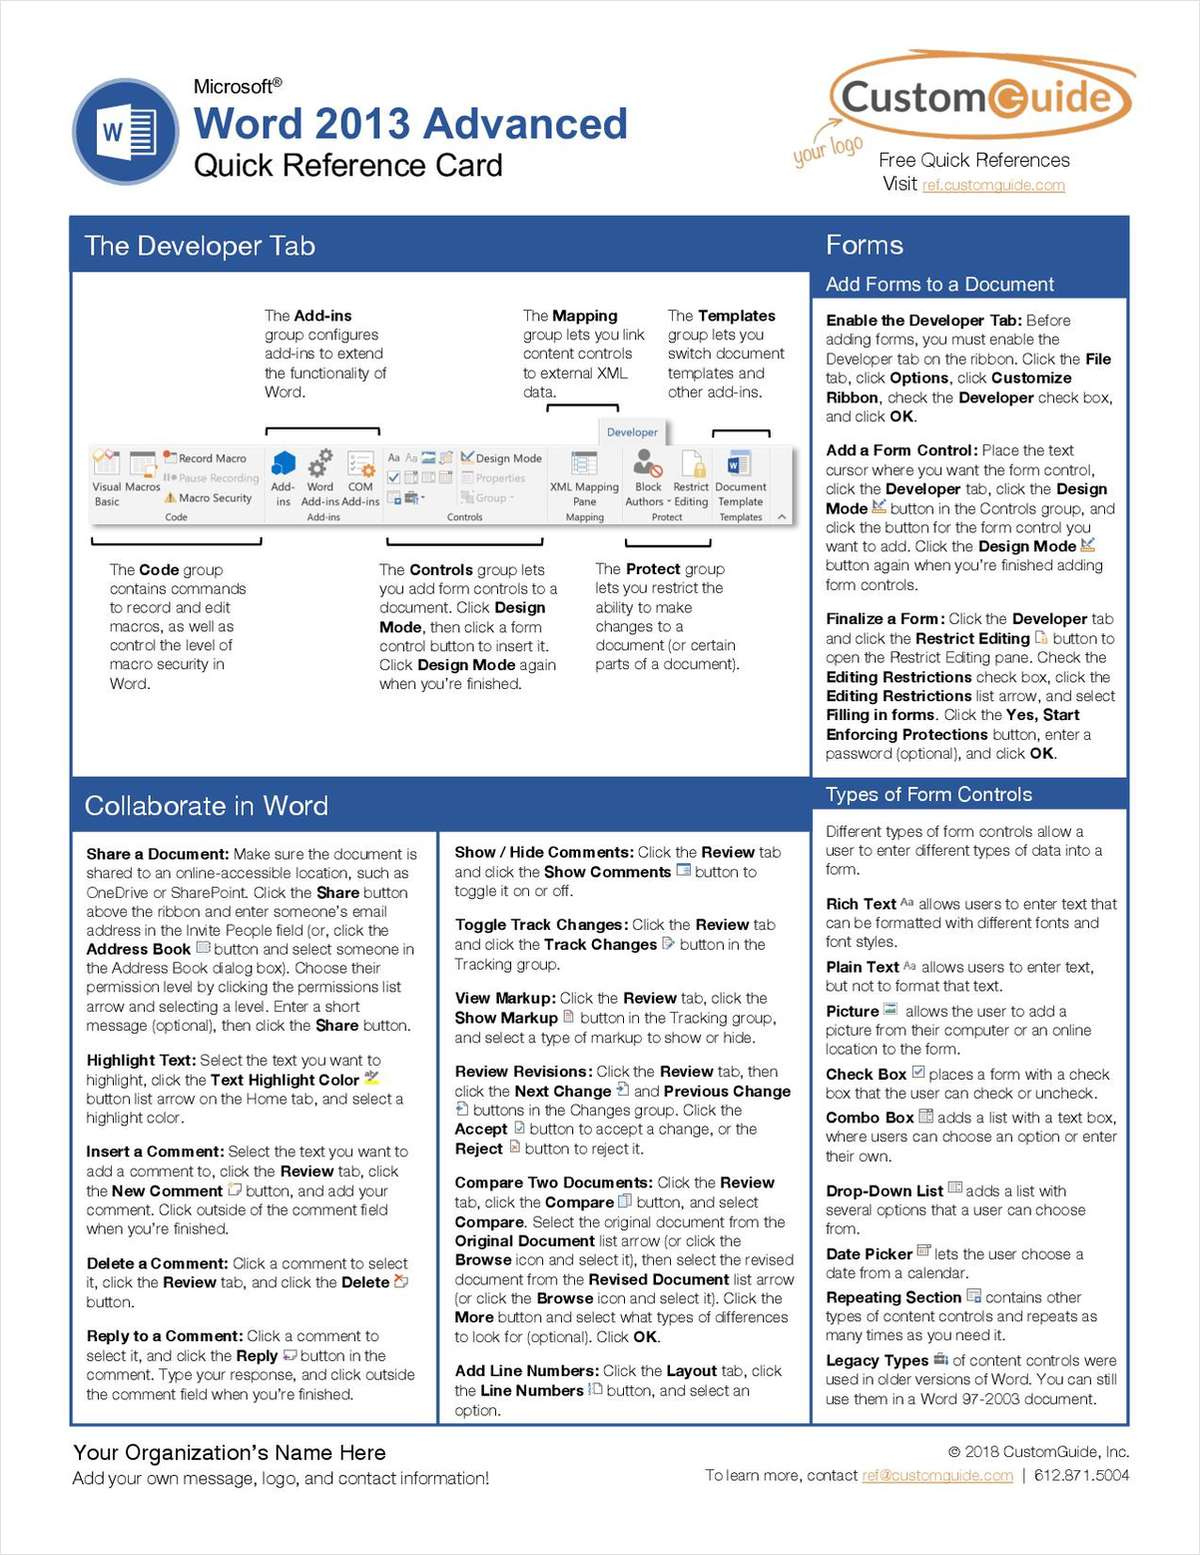 Microsoft Word 2013 Advanced - Quick Reference Card